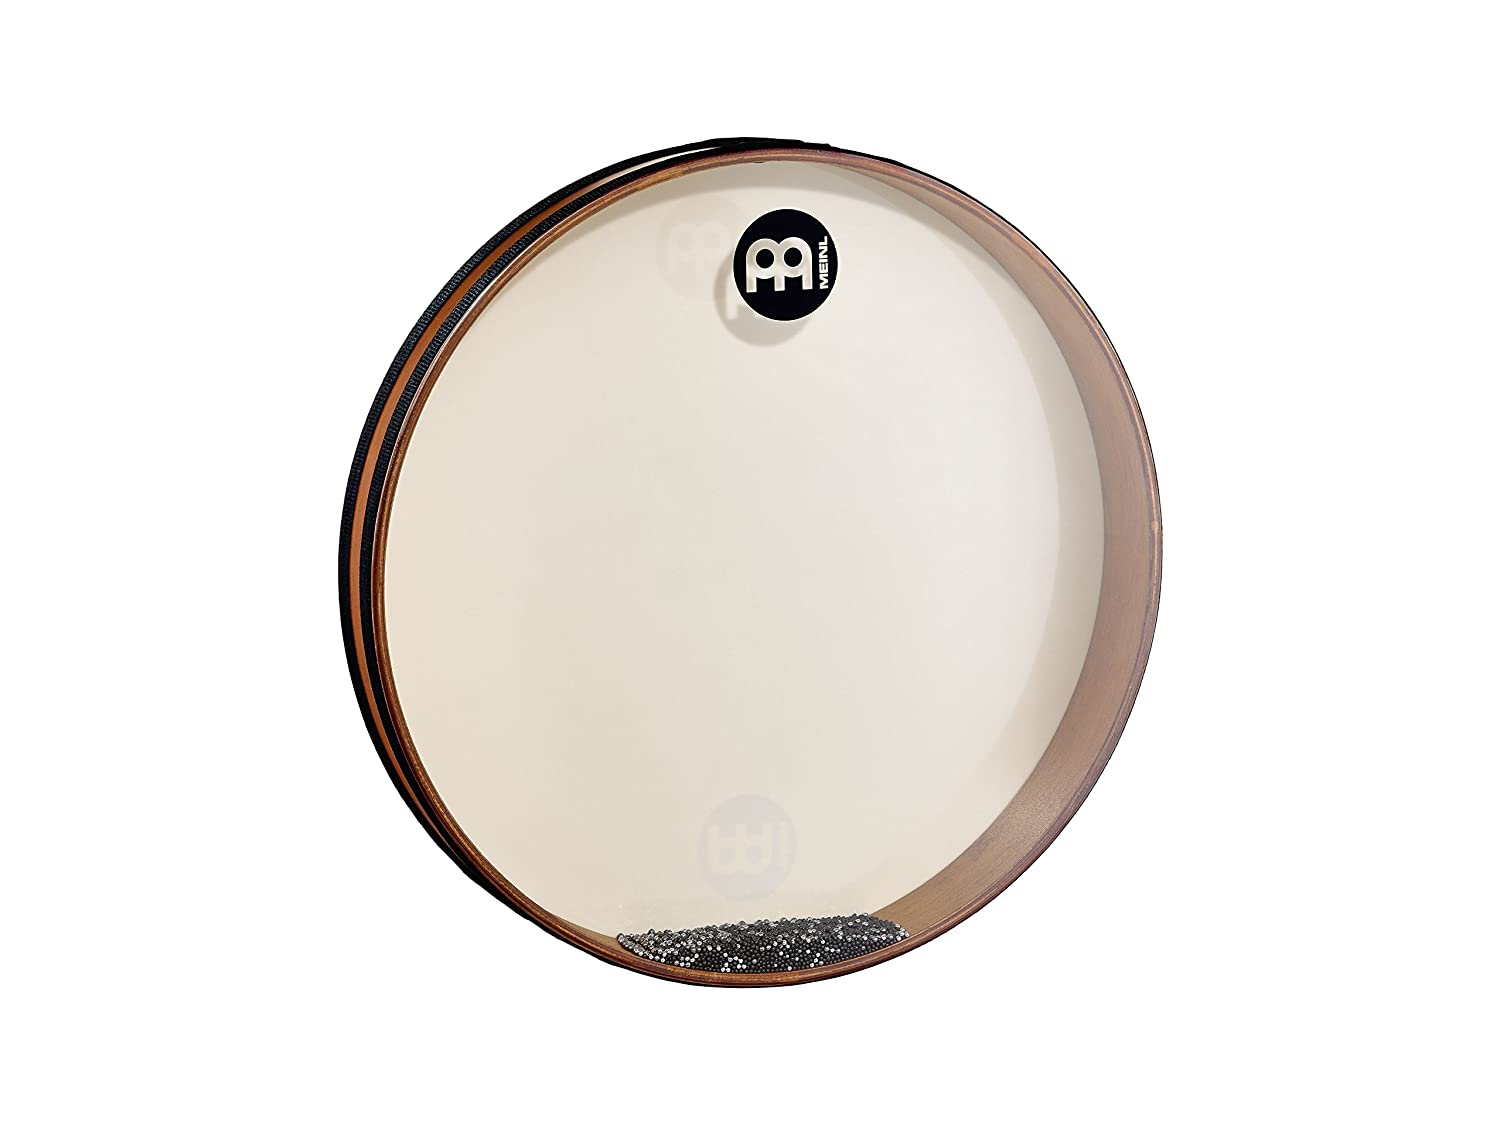 Meinl Percussion FD18SD-TF 18-Inch Sea Drum with Synthetic Head, African Brown Meinl USA L.C.